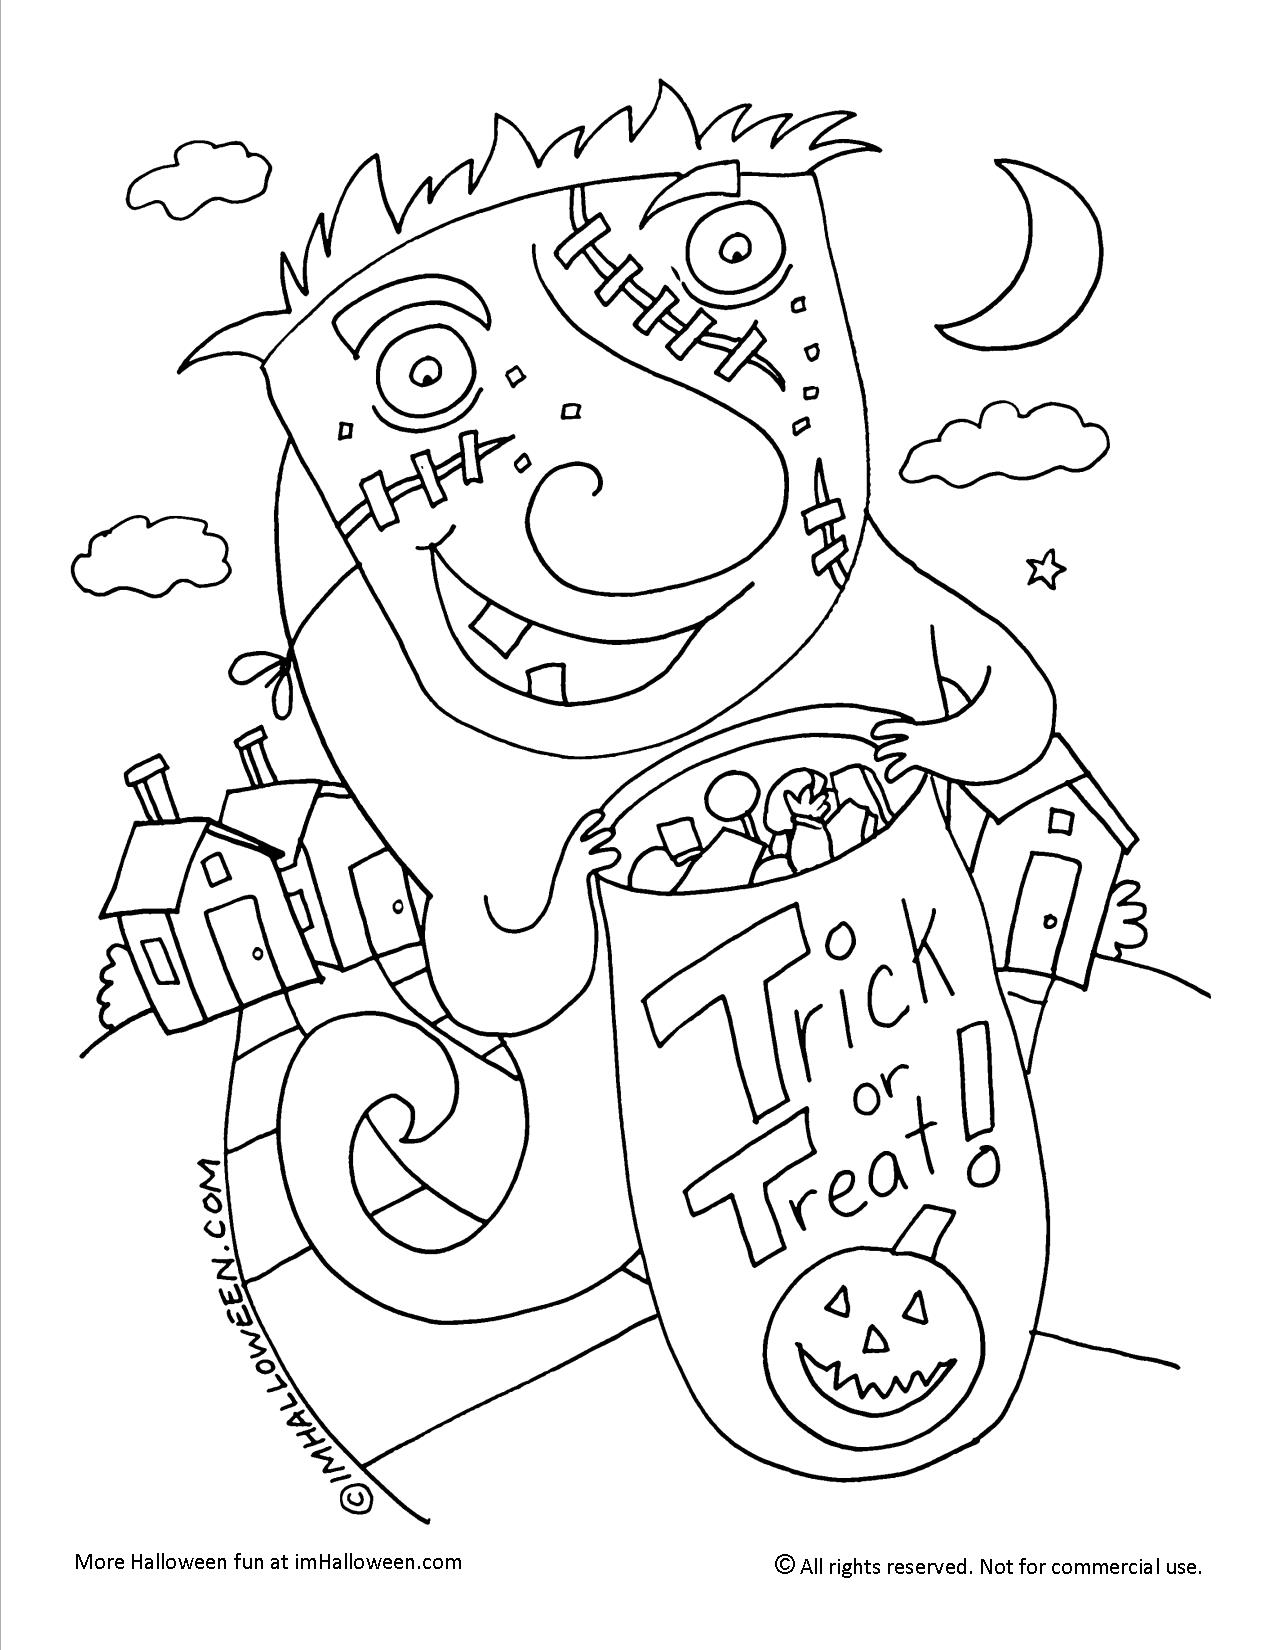 Trick-or-Treat Coloring Page